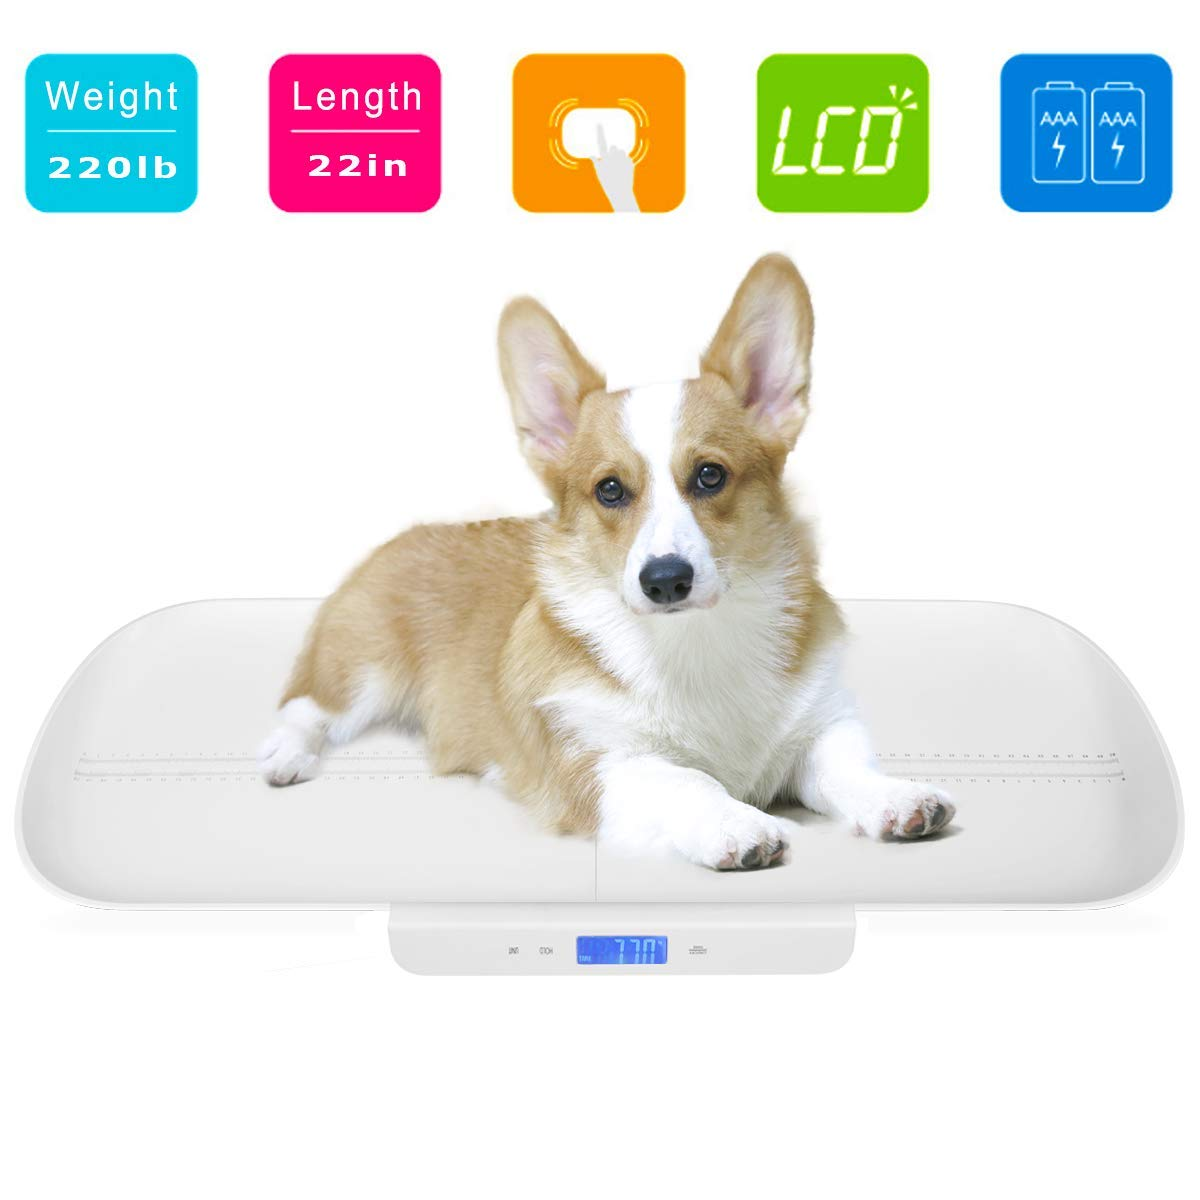 Amazon Scale For Pets Digital Baby Scale Infant Scale Mother